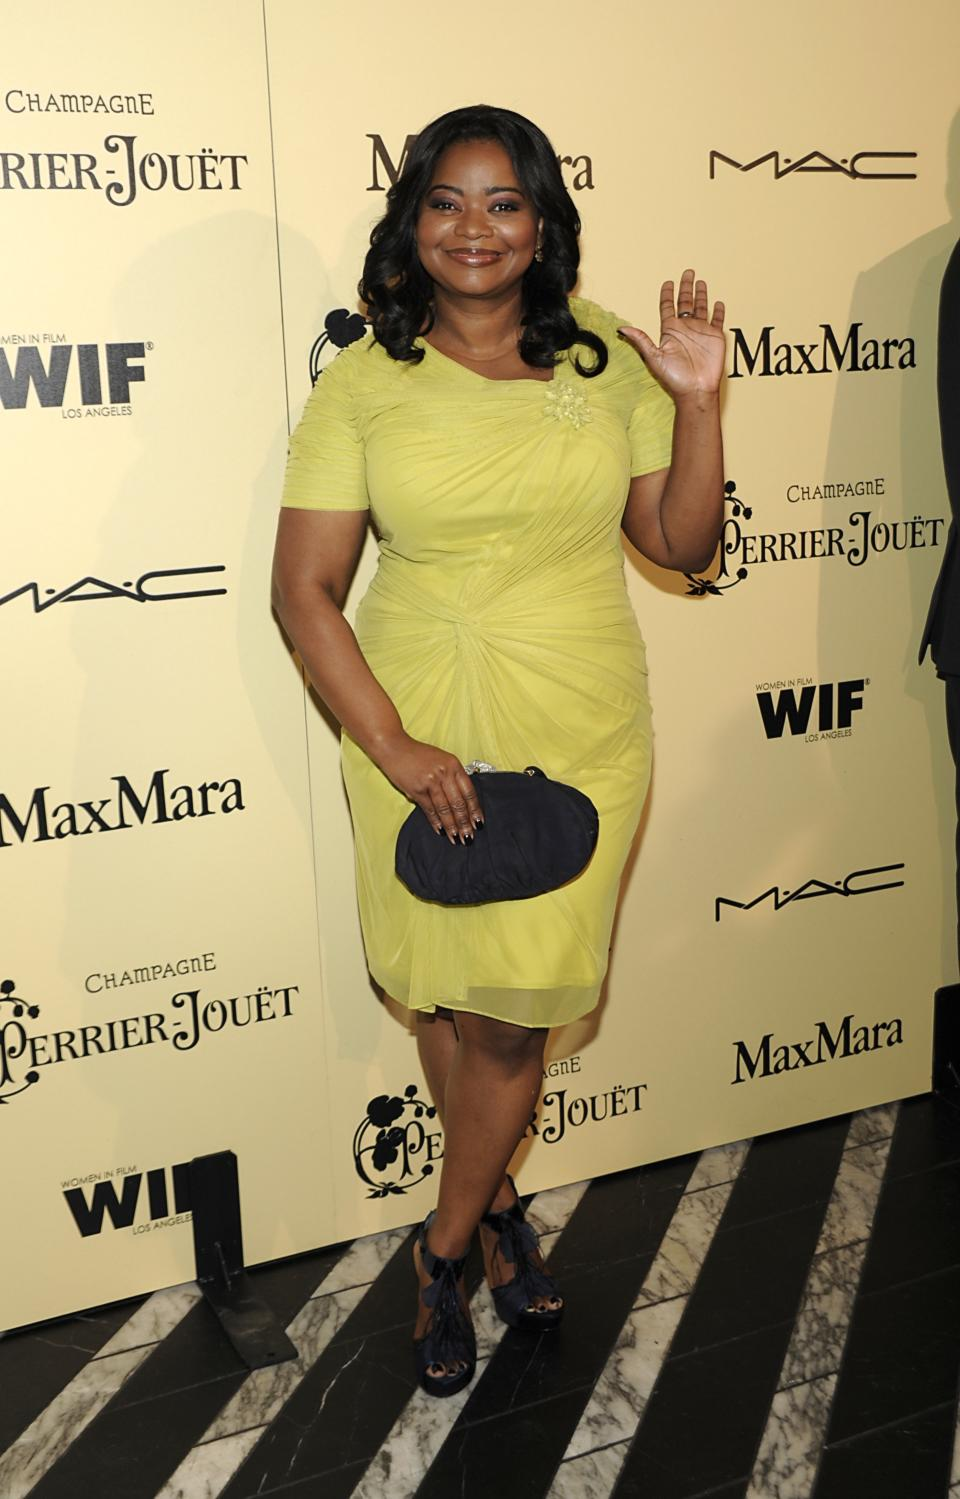 Actress Octavia Spencer arrives at the Women In Film 2012 Academy Award Party in West Hollywood, Calif. on Friday, Feb. 24, 2012. (AP Photo/Dan Steinberg)